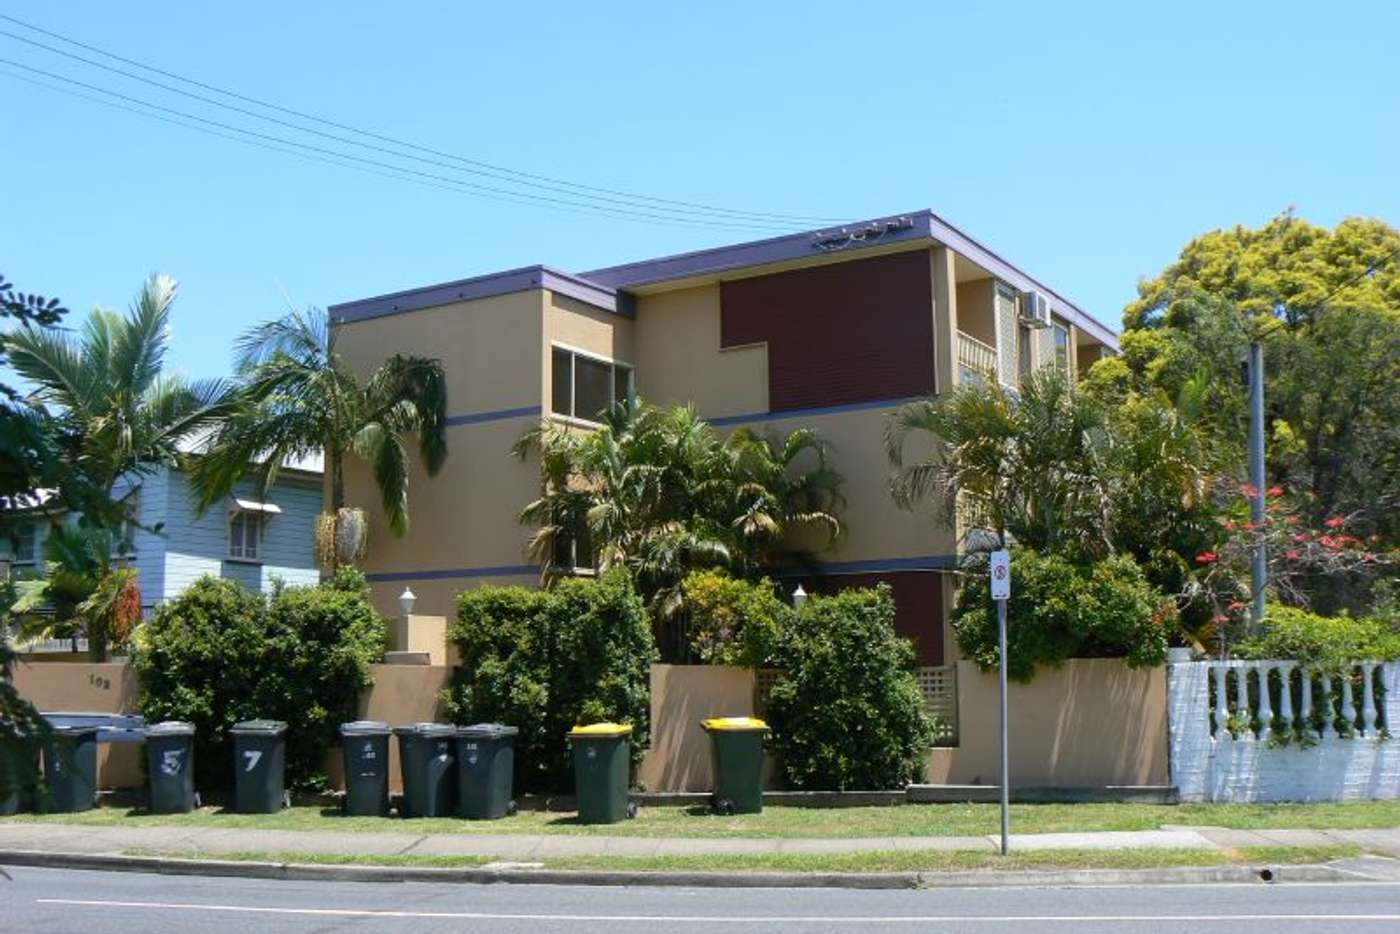 Main view of Homely apartment listing, 8/102 Kedron Park Road, Wooloowin QLD 4030